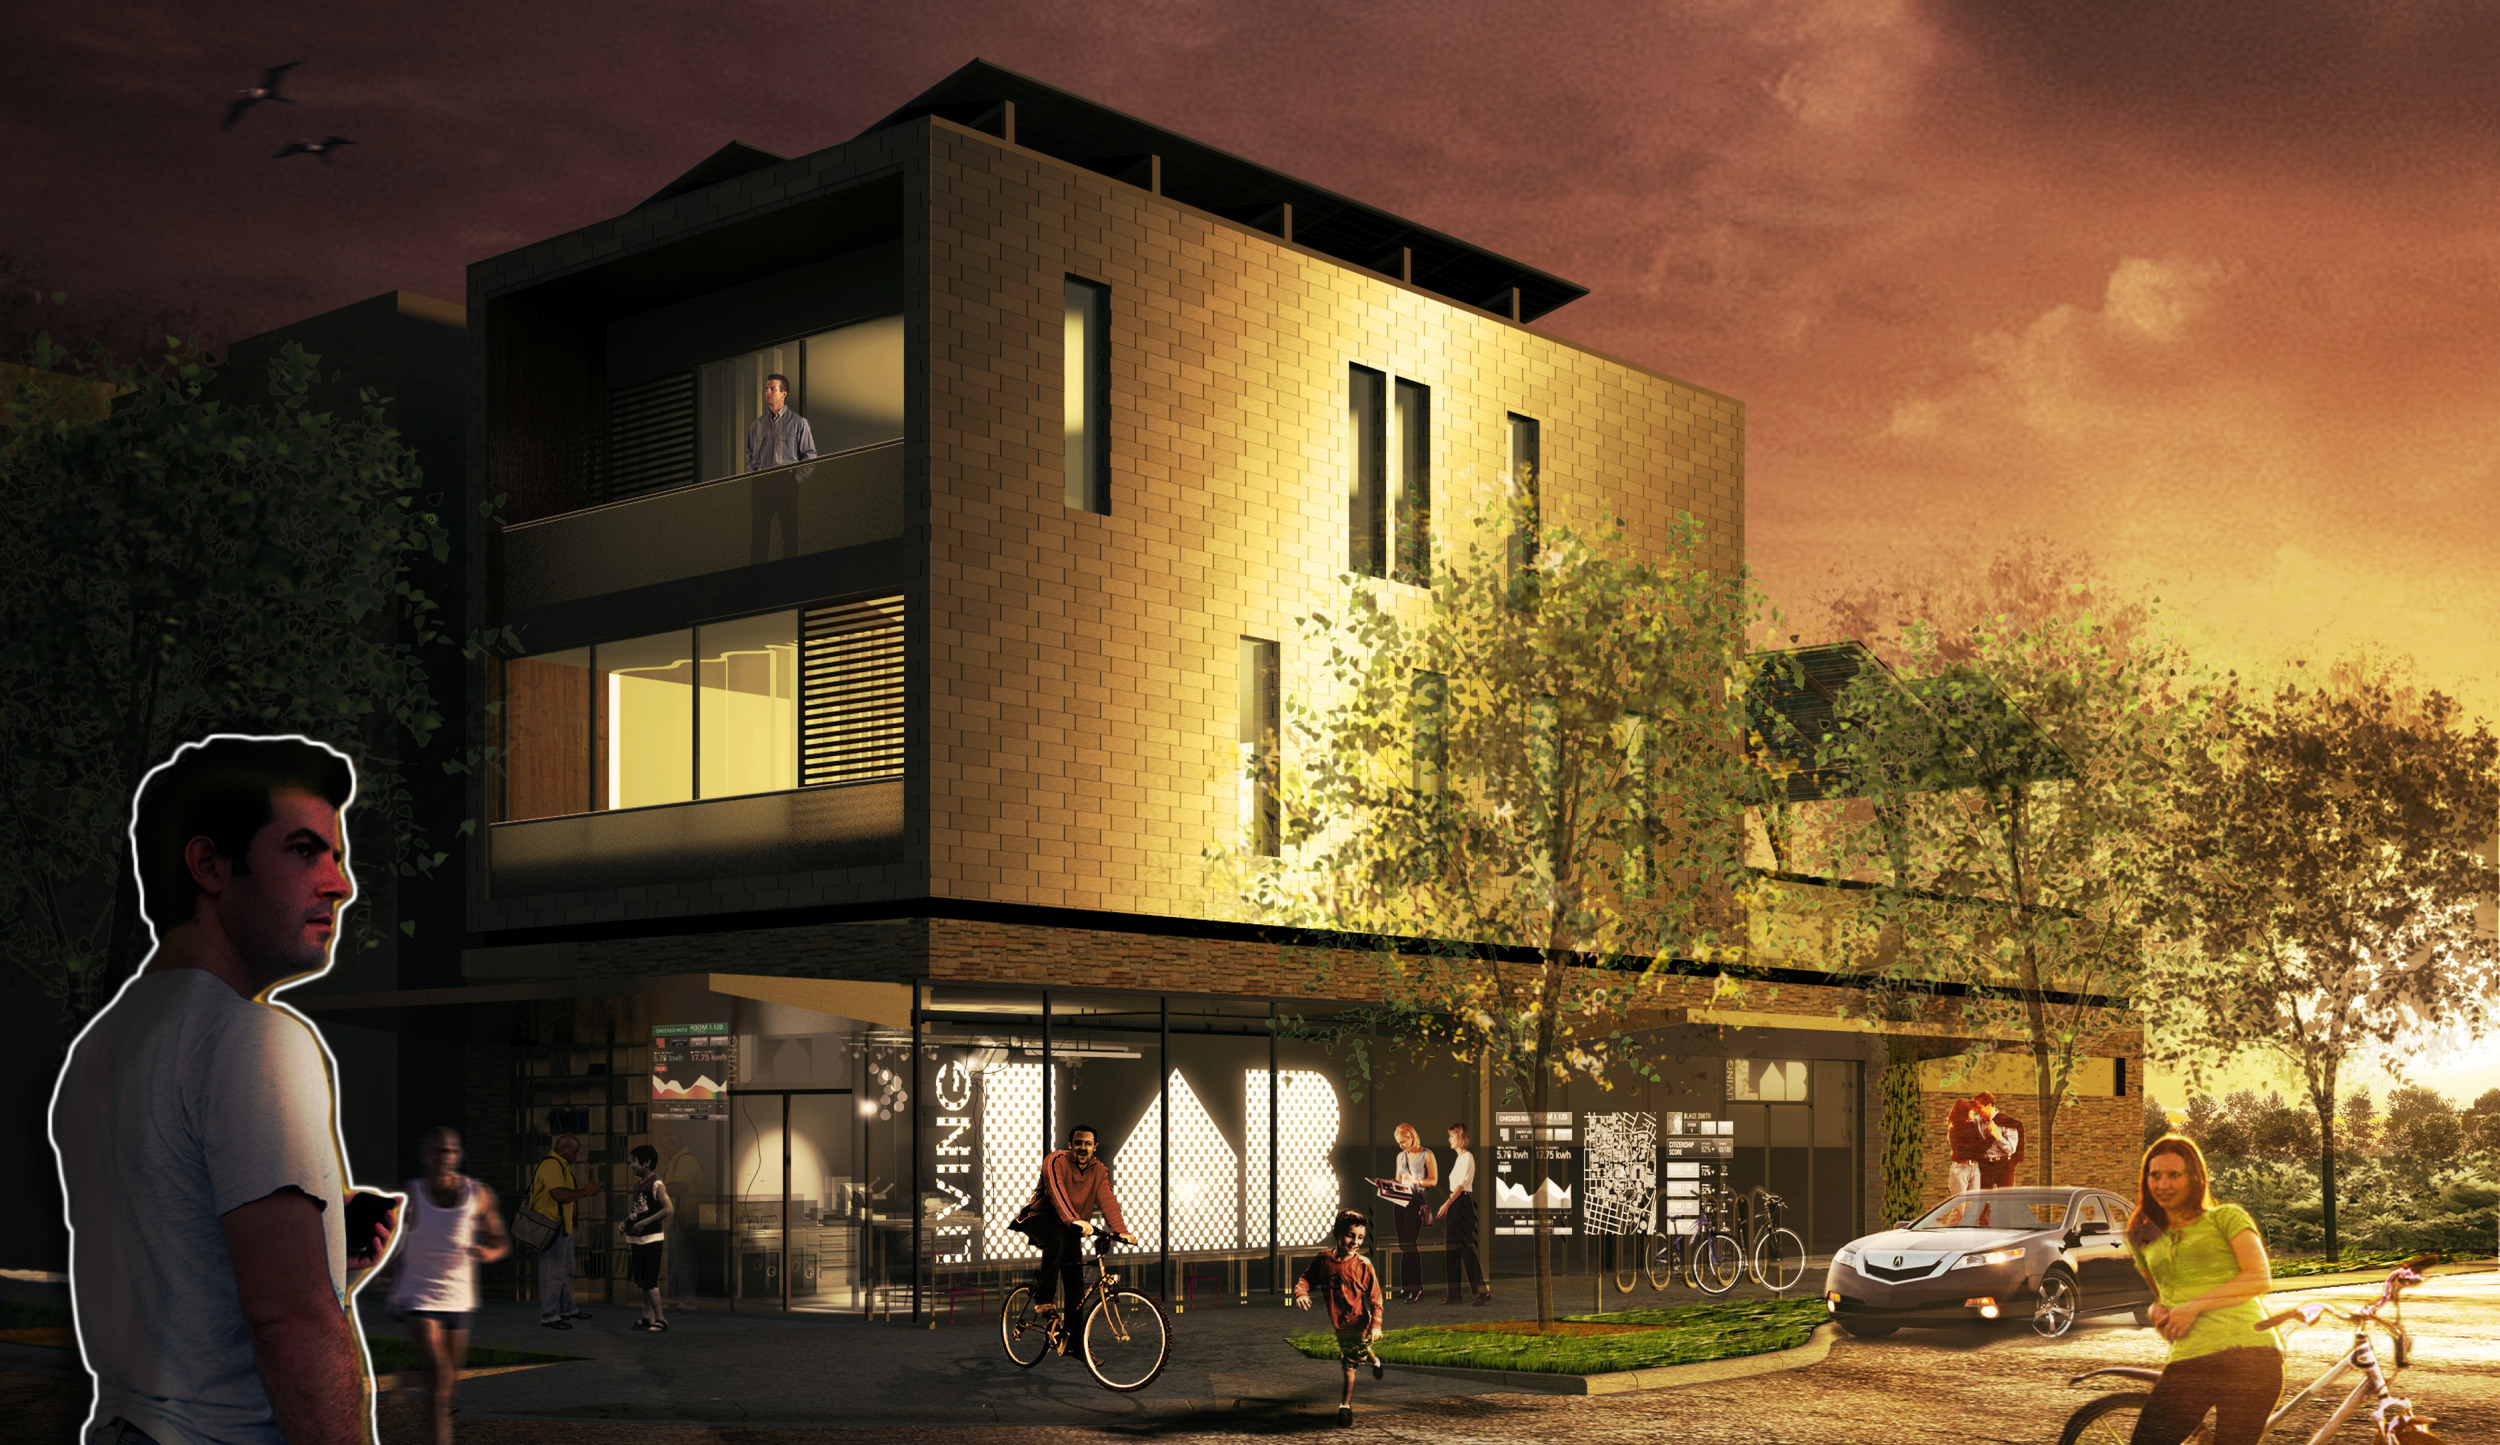 Pike Powers Living Lab Matt Fajkus MF Architecture rendering 1.jpg